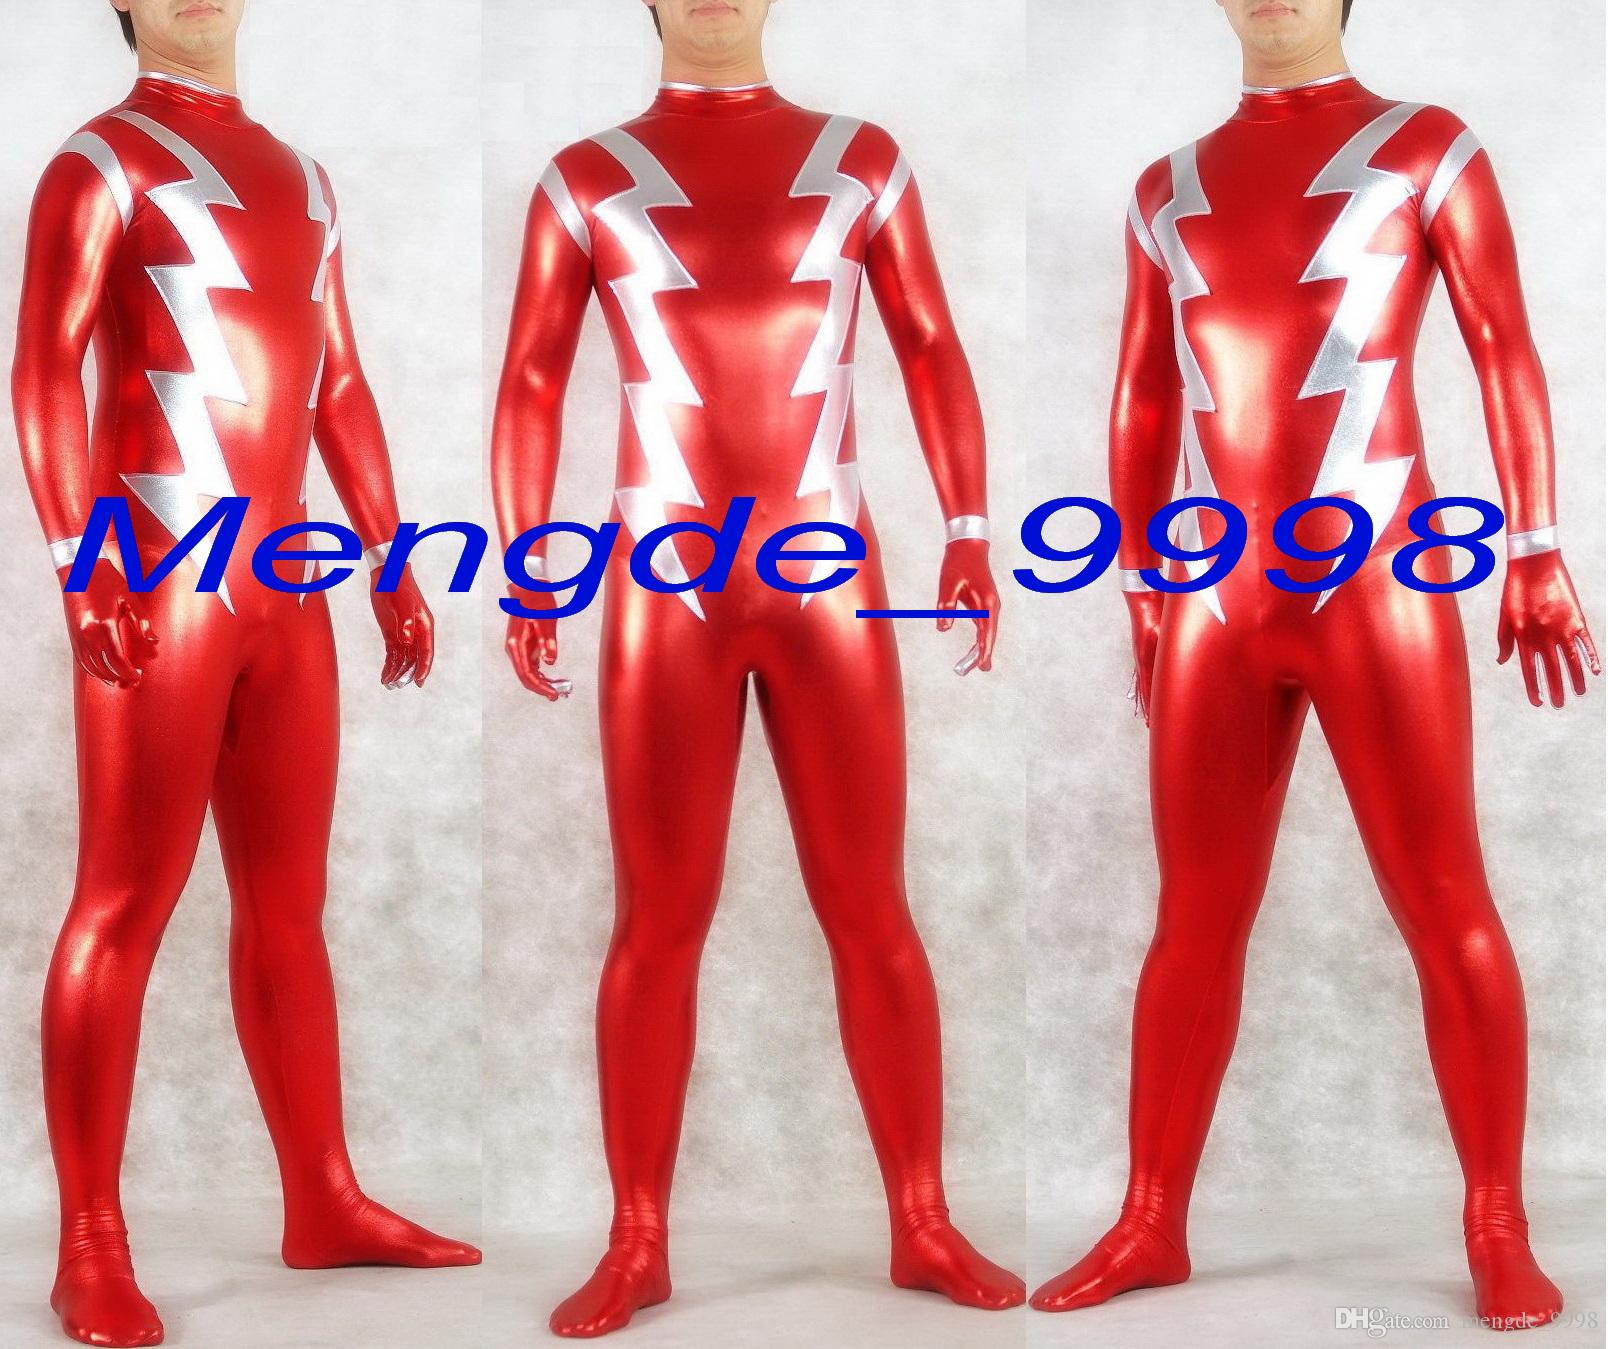 0a02886b7d Unisex Superhero Suit Outfit Red Silver Shiny Lycra Metallic Flash Suit  Catsuit Costumes Fancy Flash Costumes Halloween Cosplay Suit M198 Themed  Halloween ...